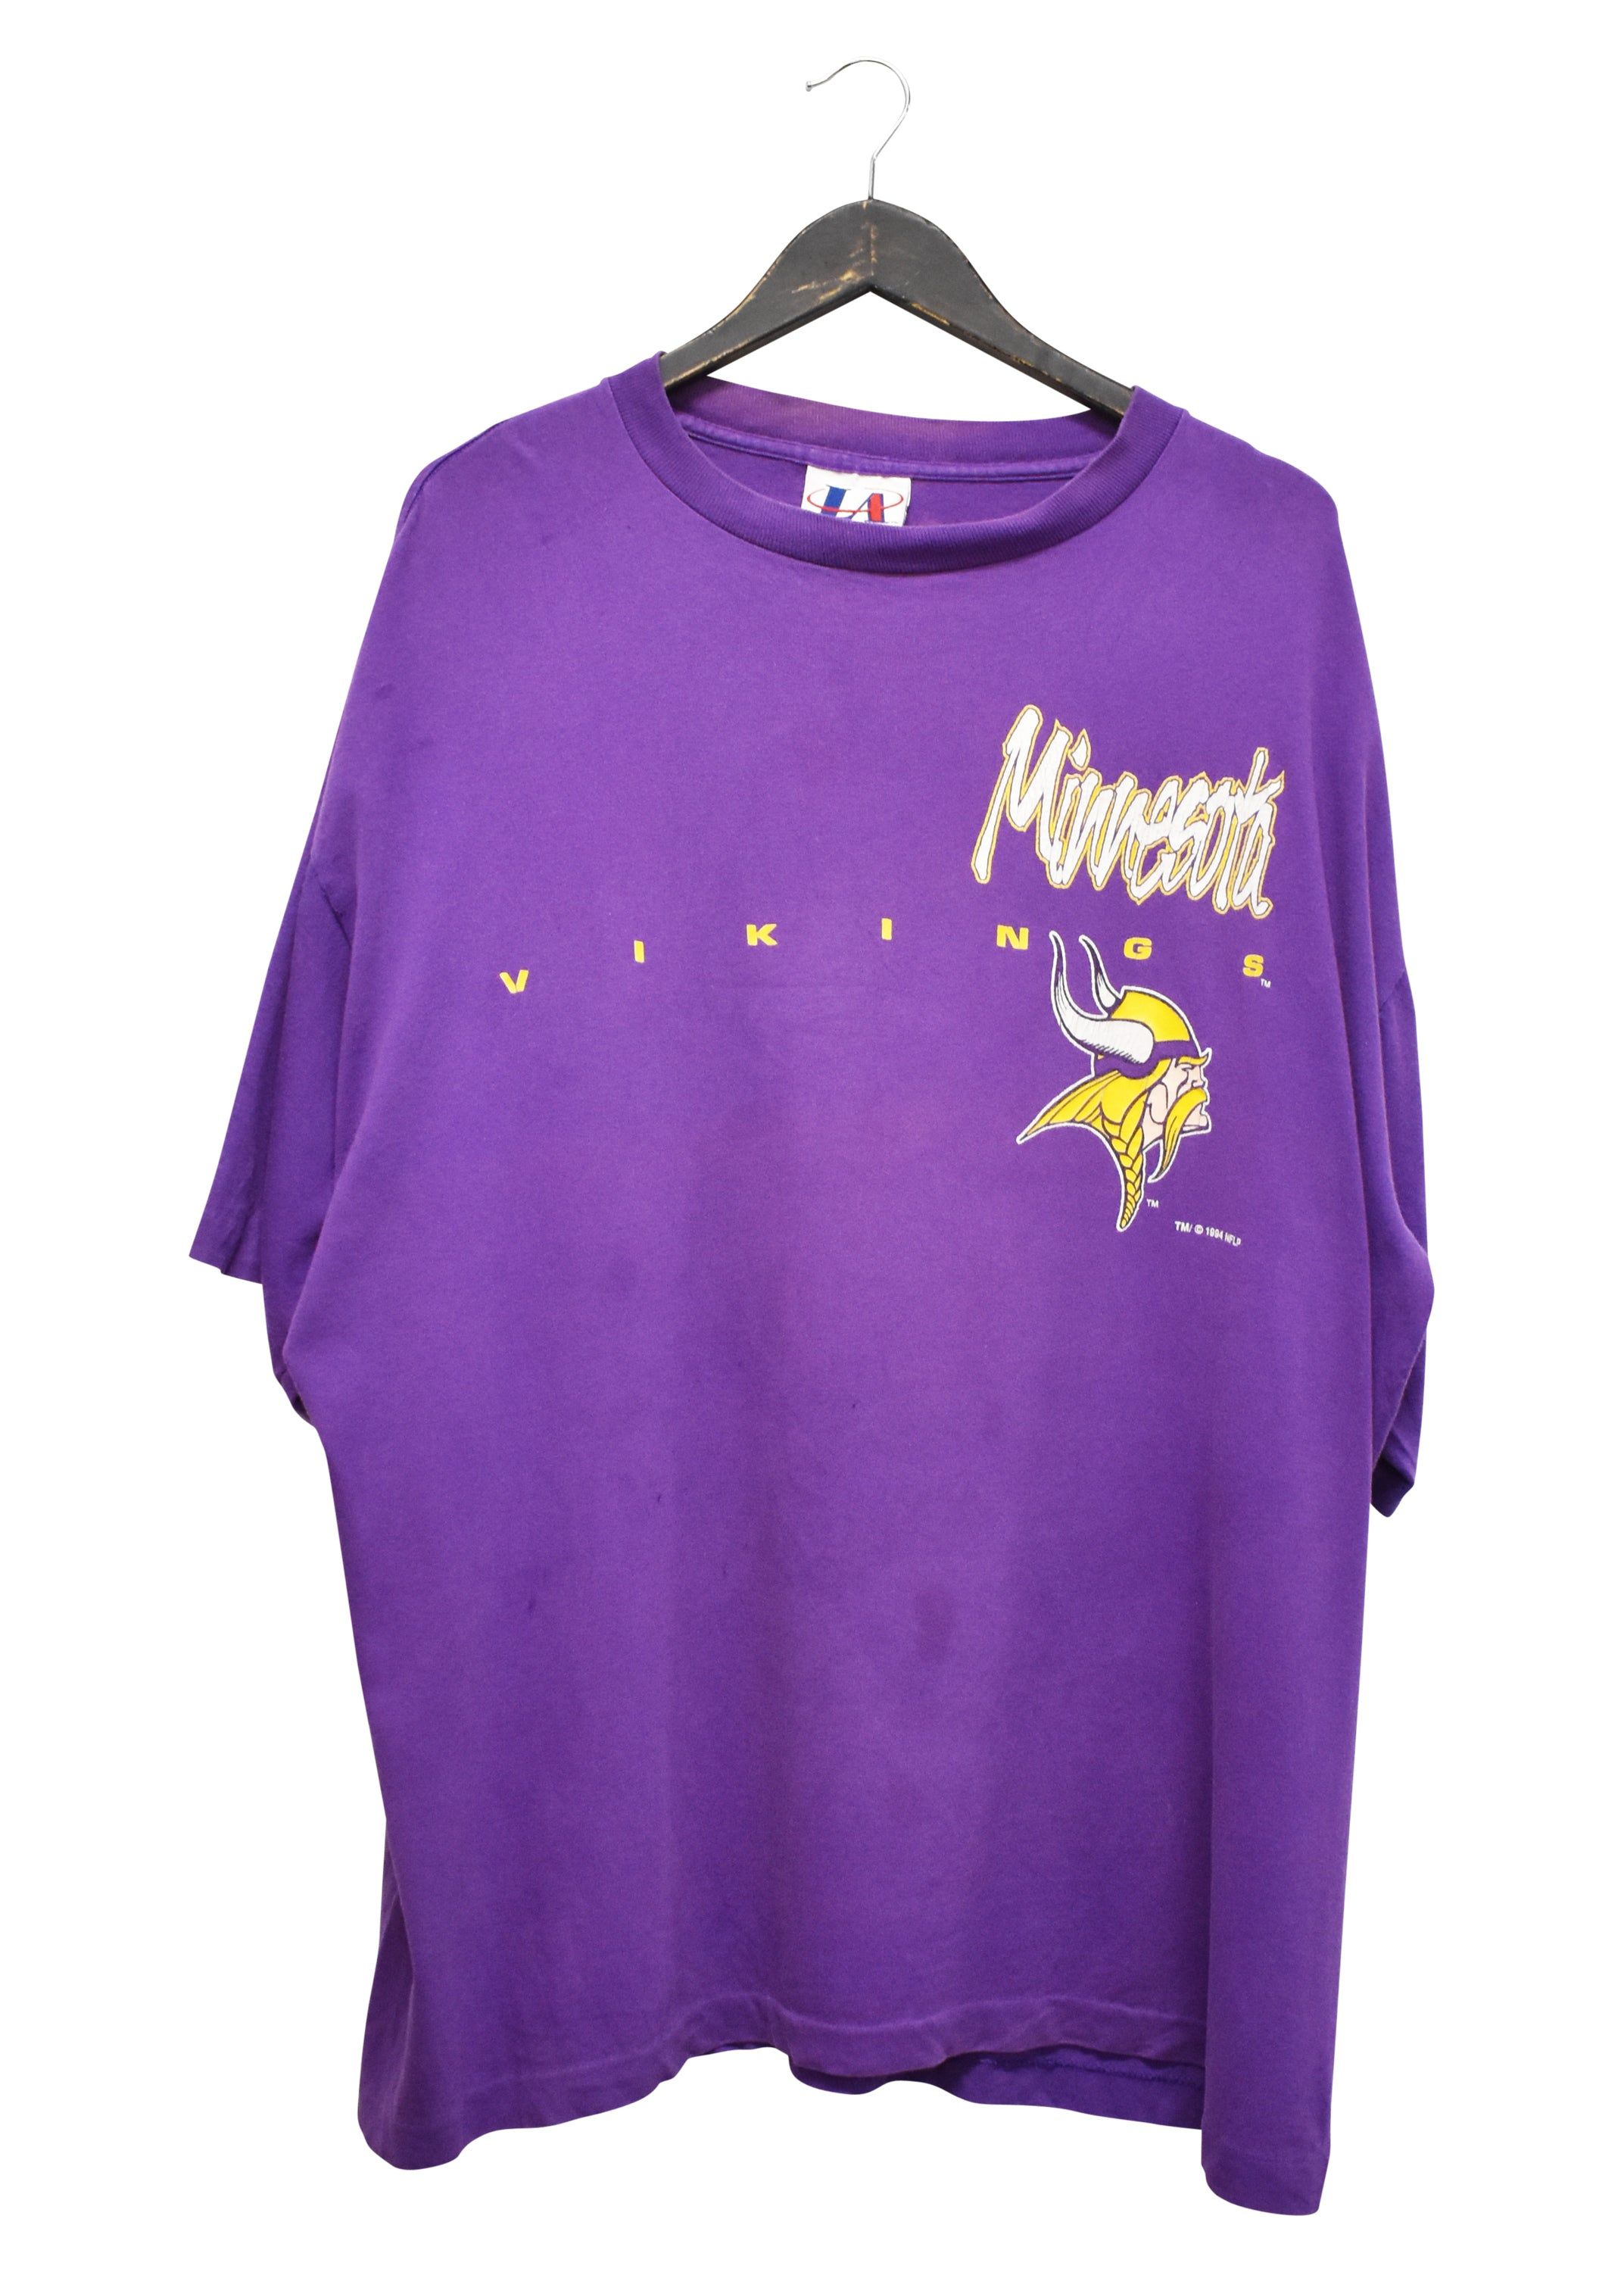 RED HOT CHILLI PEPPERS COLLECTOR TEE